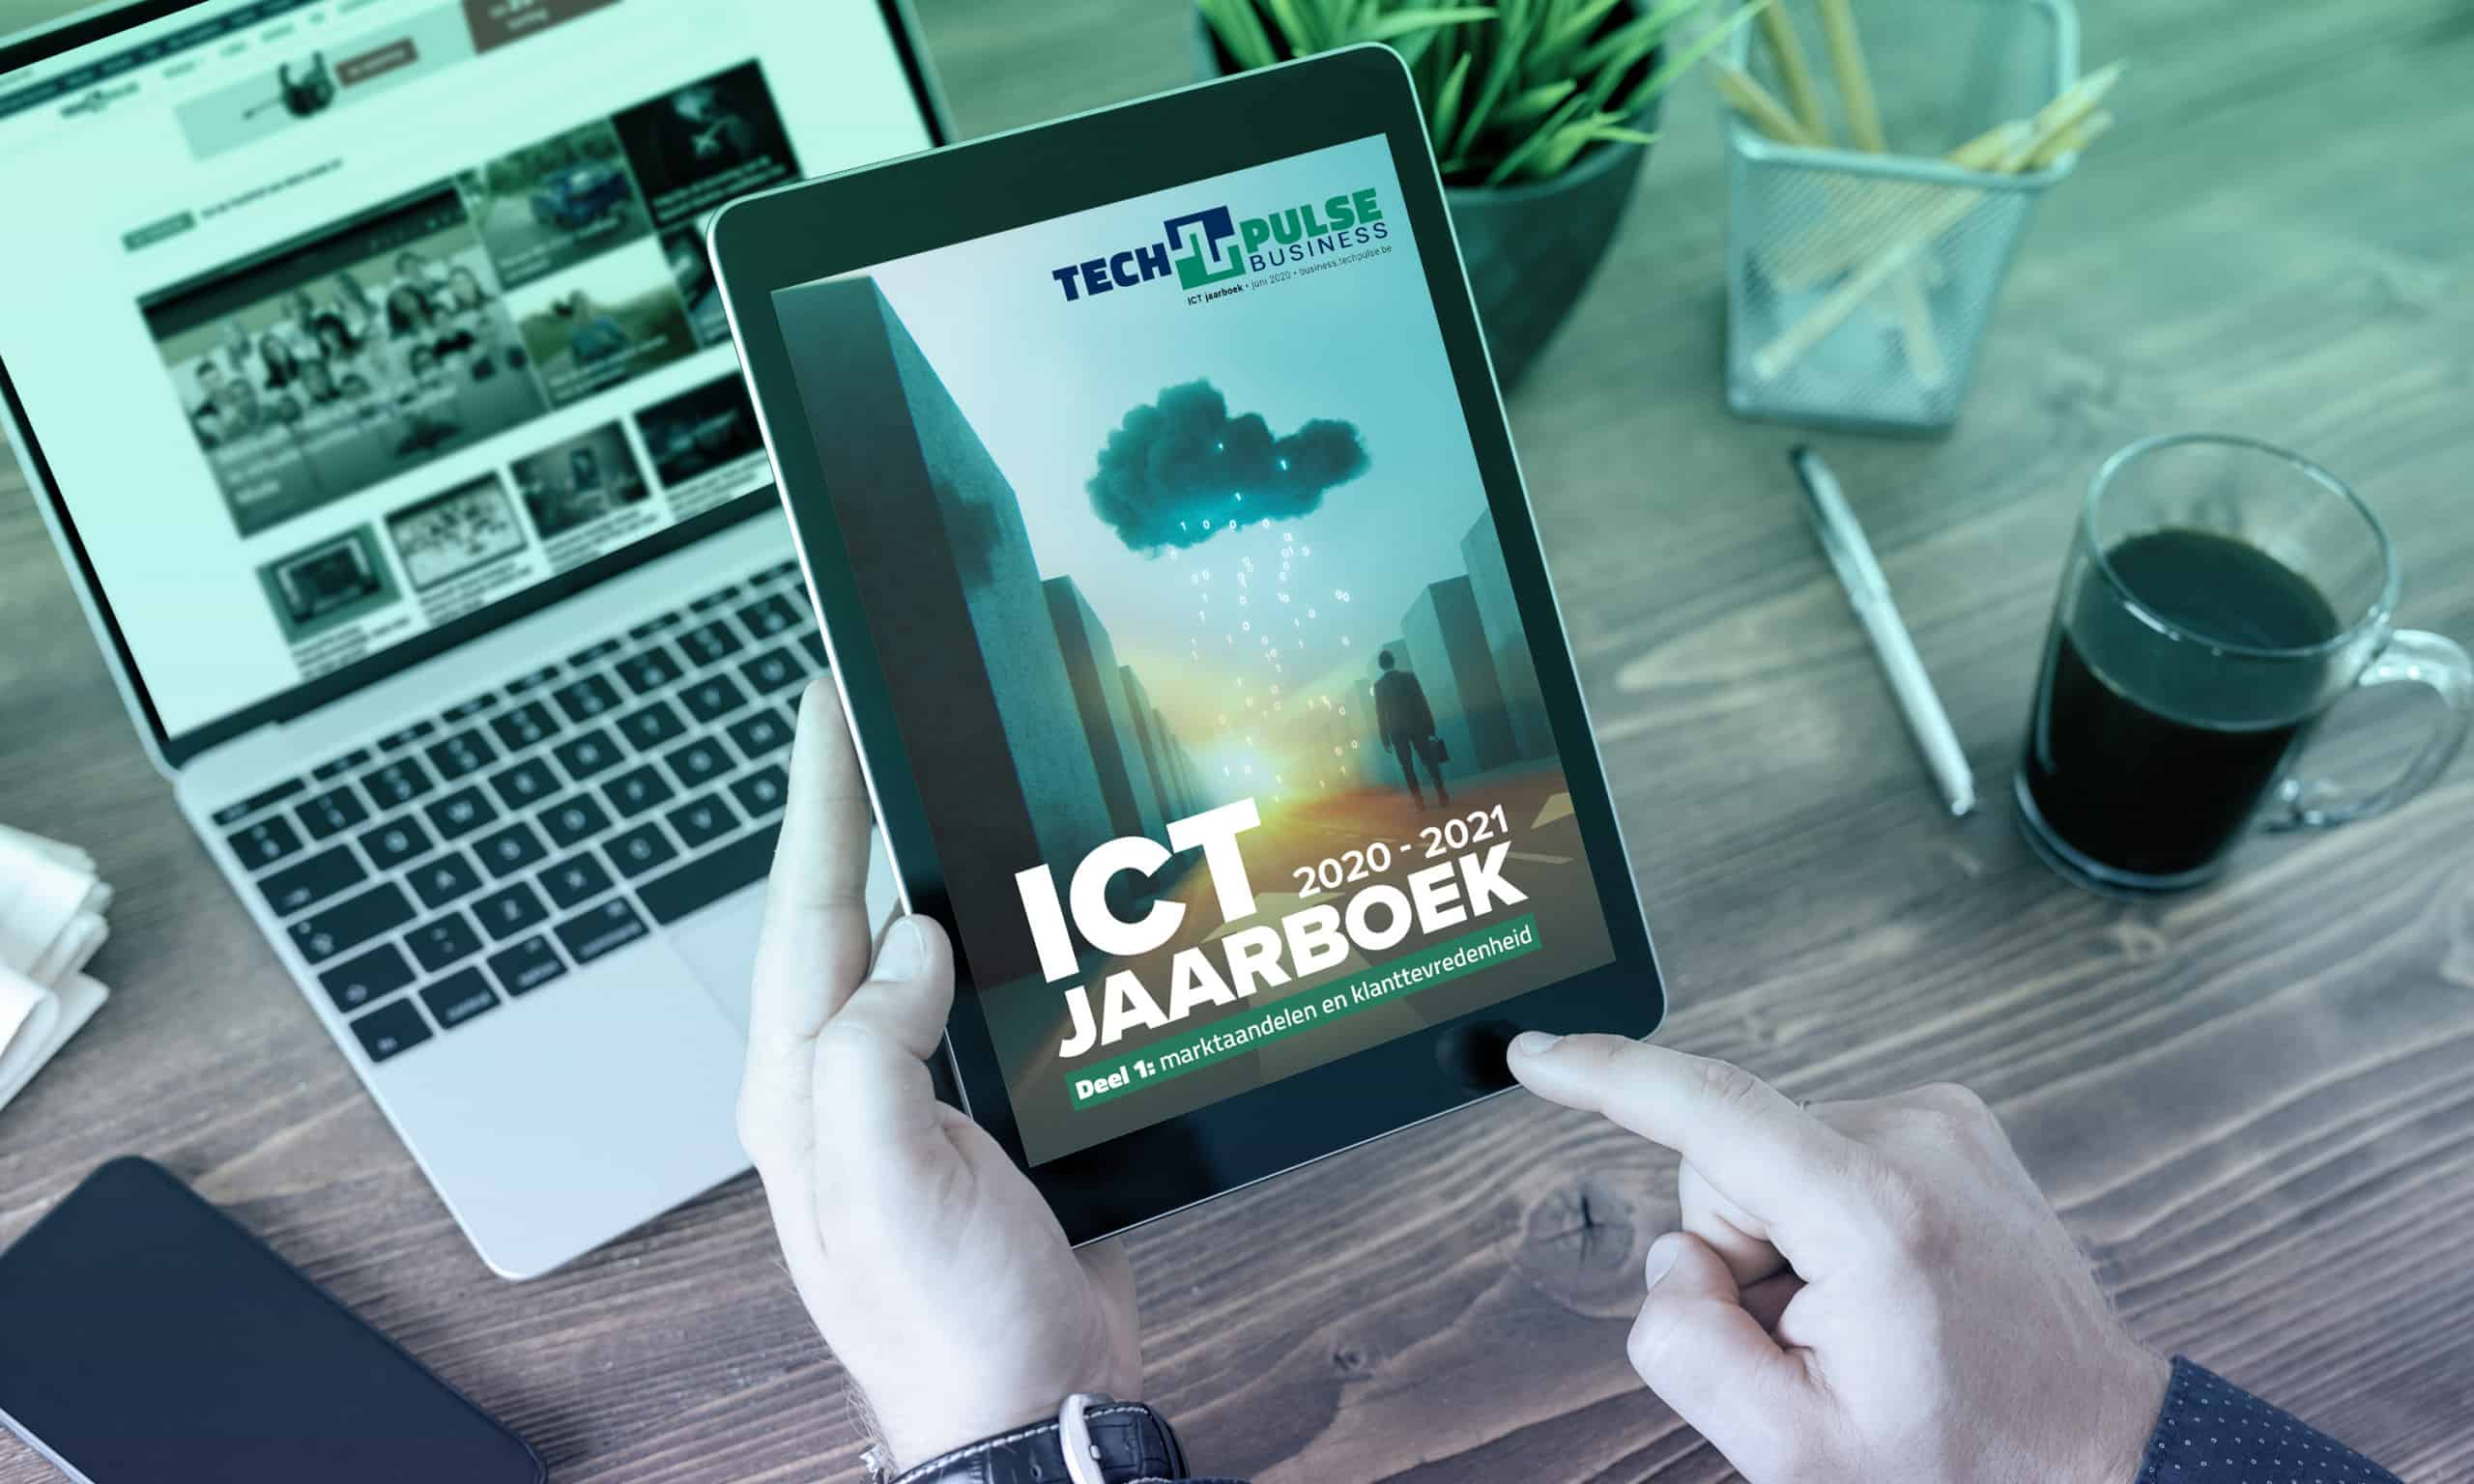 Download ICT Jaarboek 2020 deel 1 gratis!